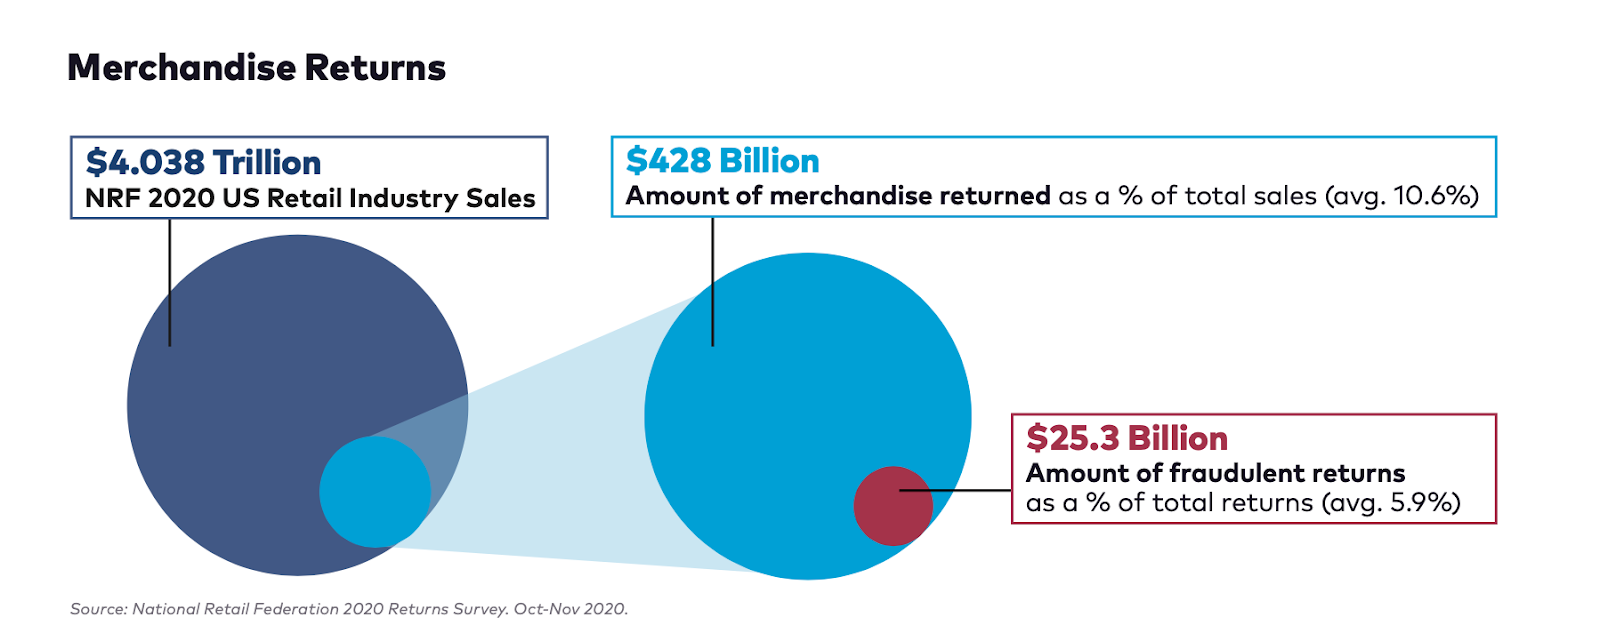 diagram of results of a merchant survey showing the percentages of return fraud as a relation of total merchandise returned